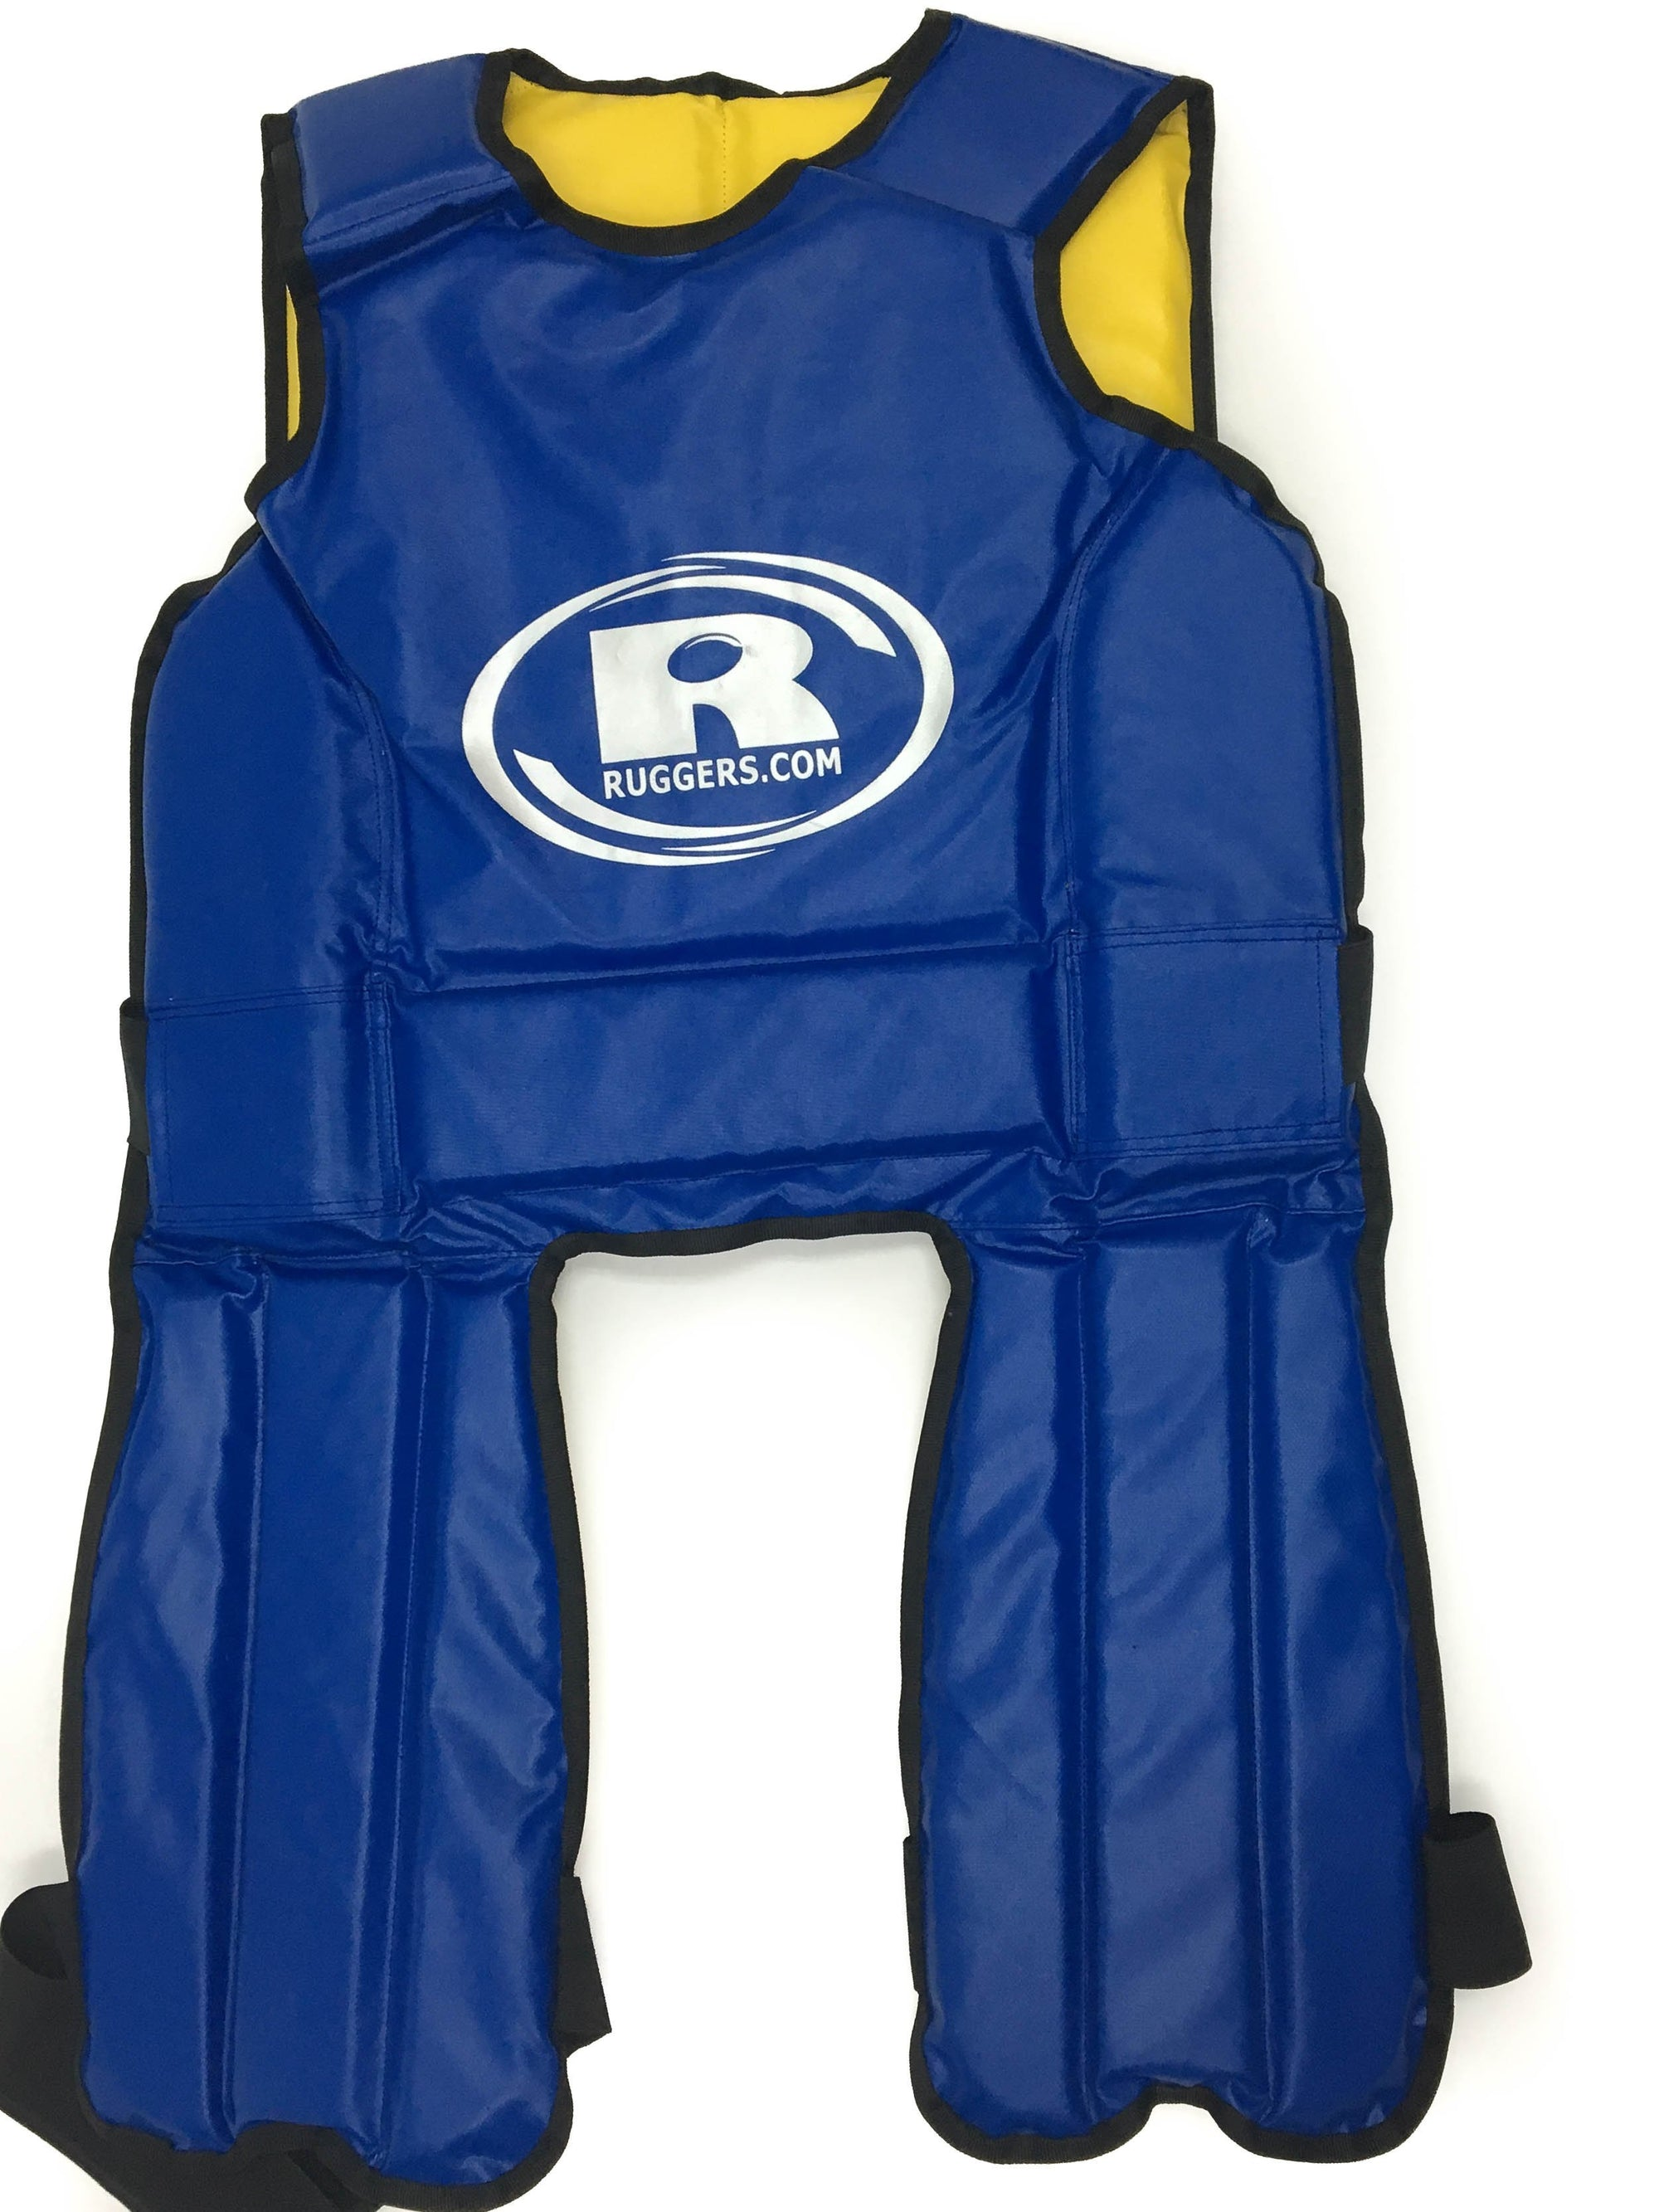 Equipment - Tackle Suit